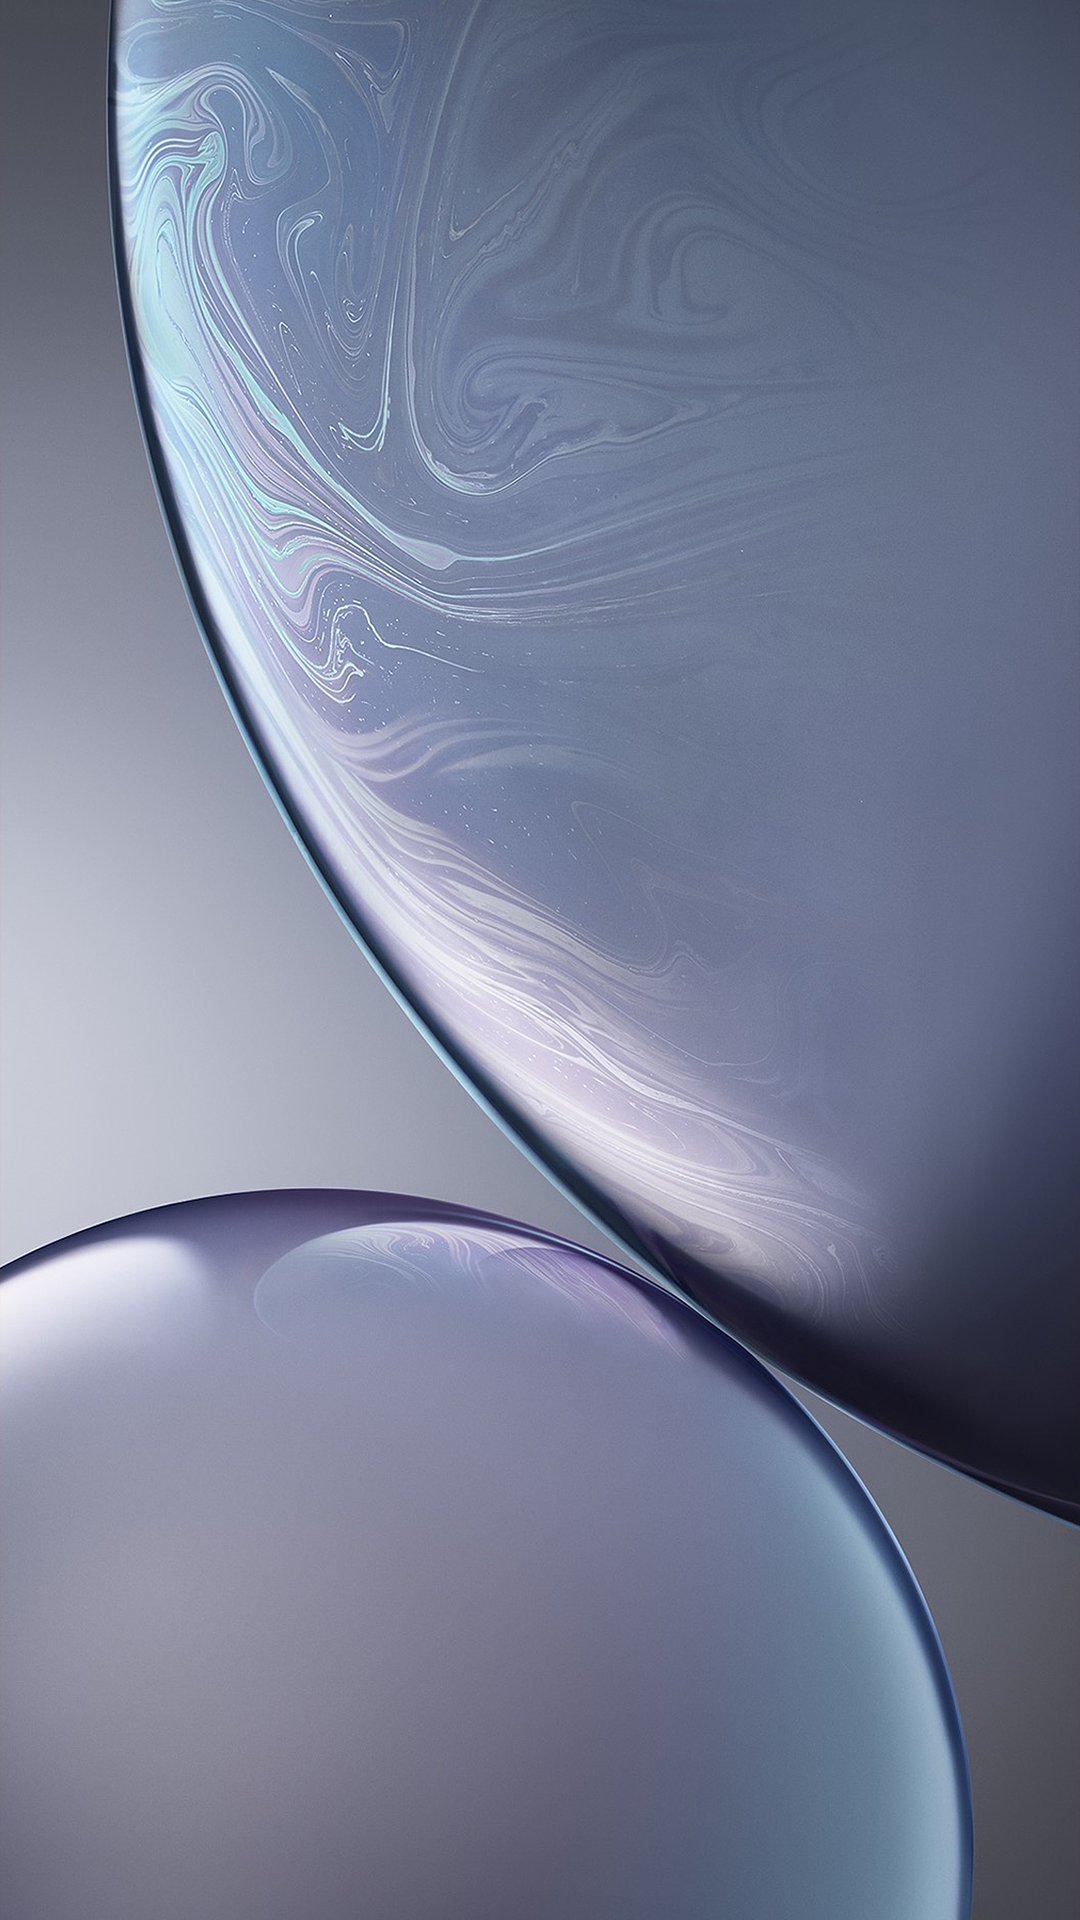 Get Inspired For Apple Xs Max Wallpaper Hd Download Wallpaper In 2020 Apple Wallpaper Iphone Iphone Wallpaper Images Original Iphone Wallpaper